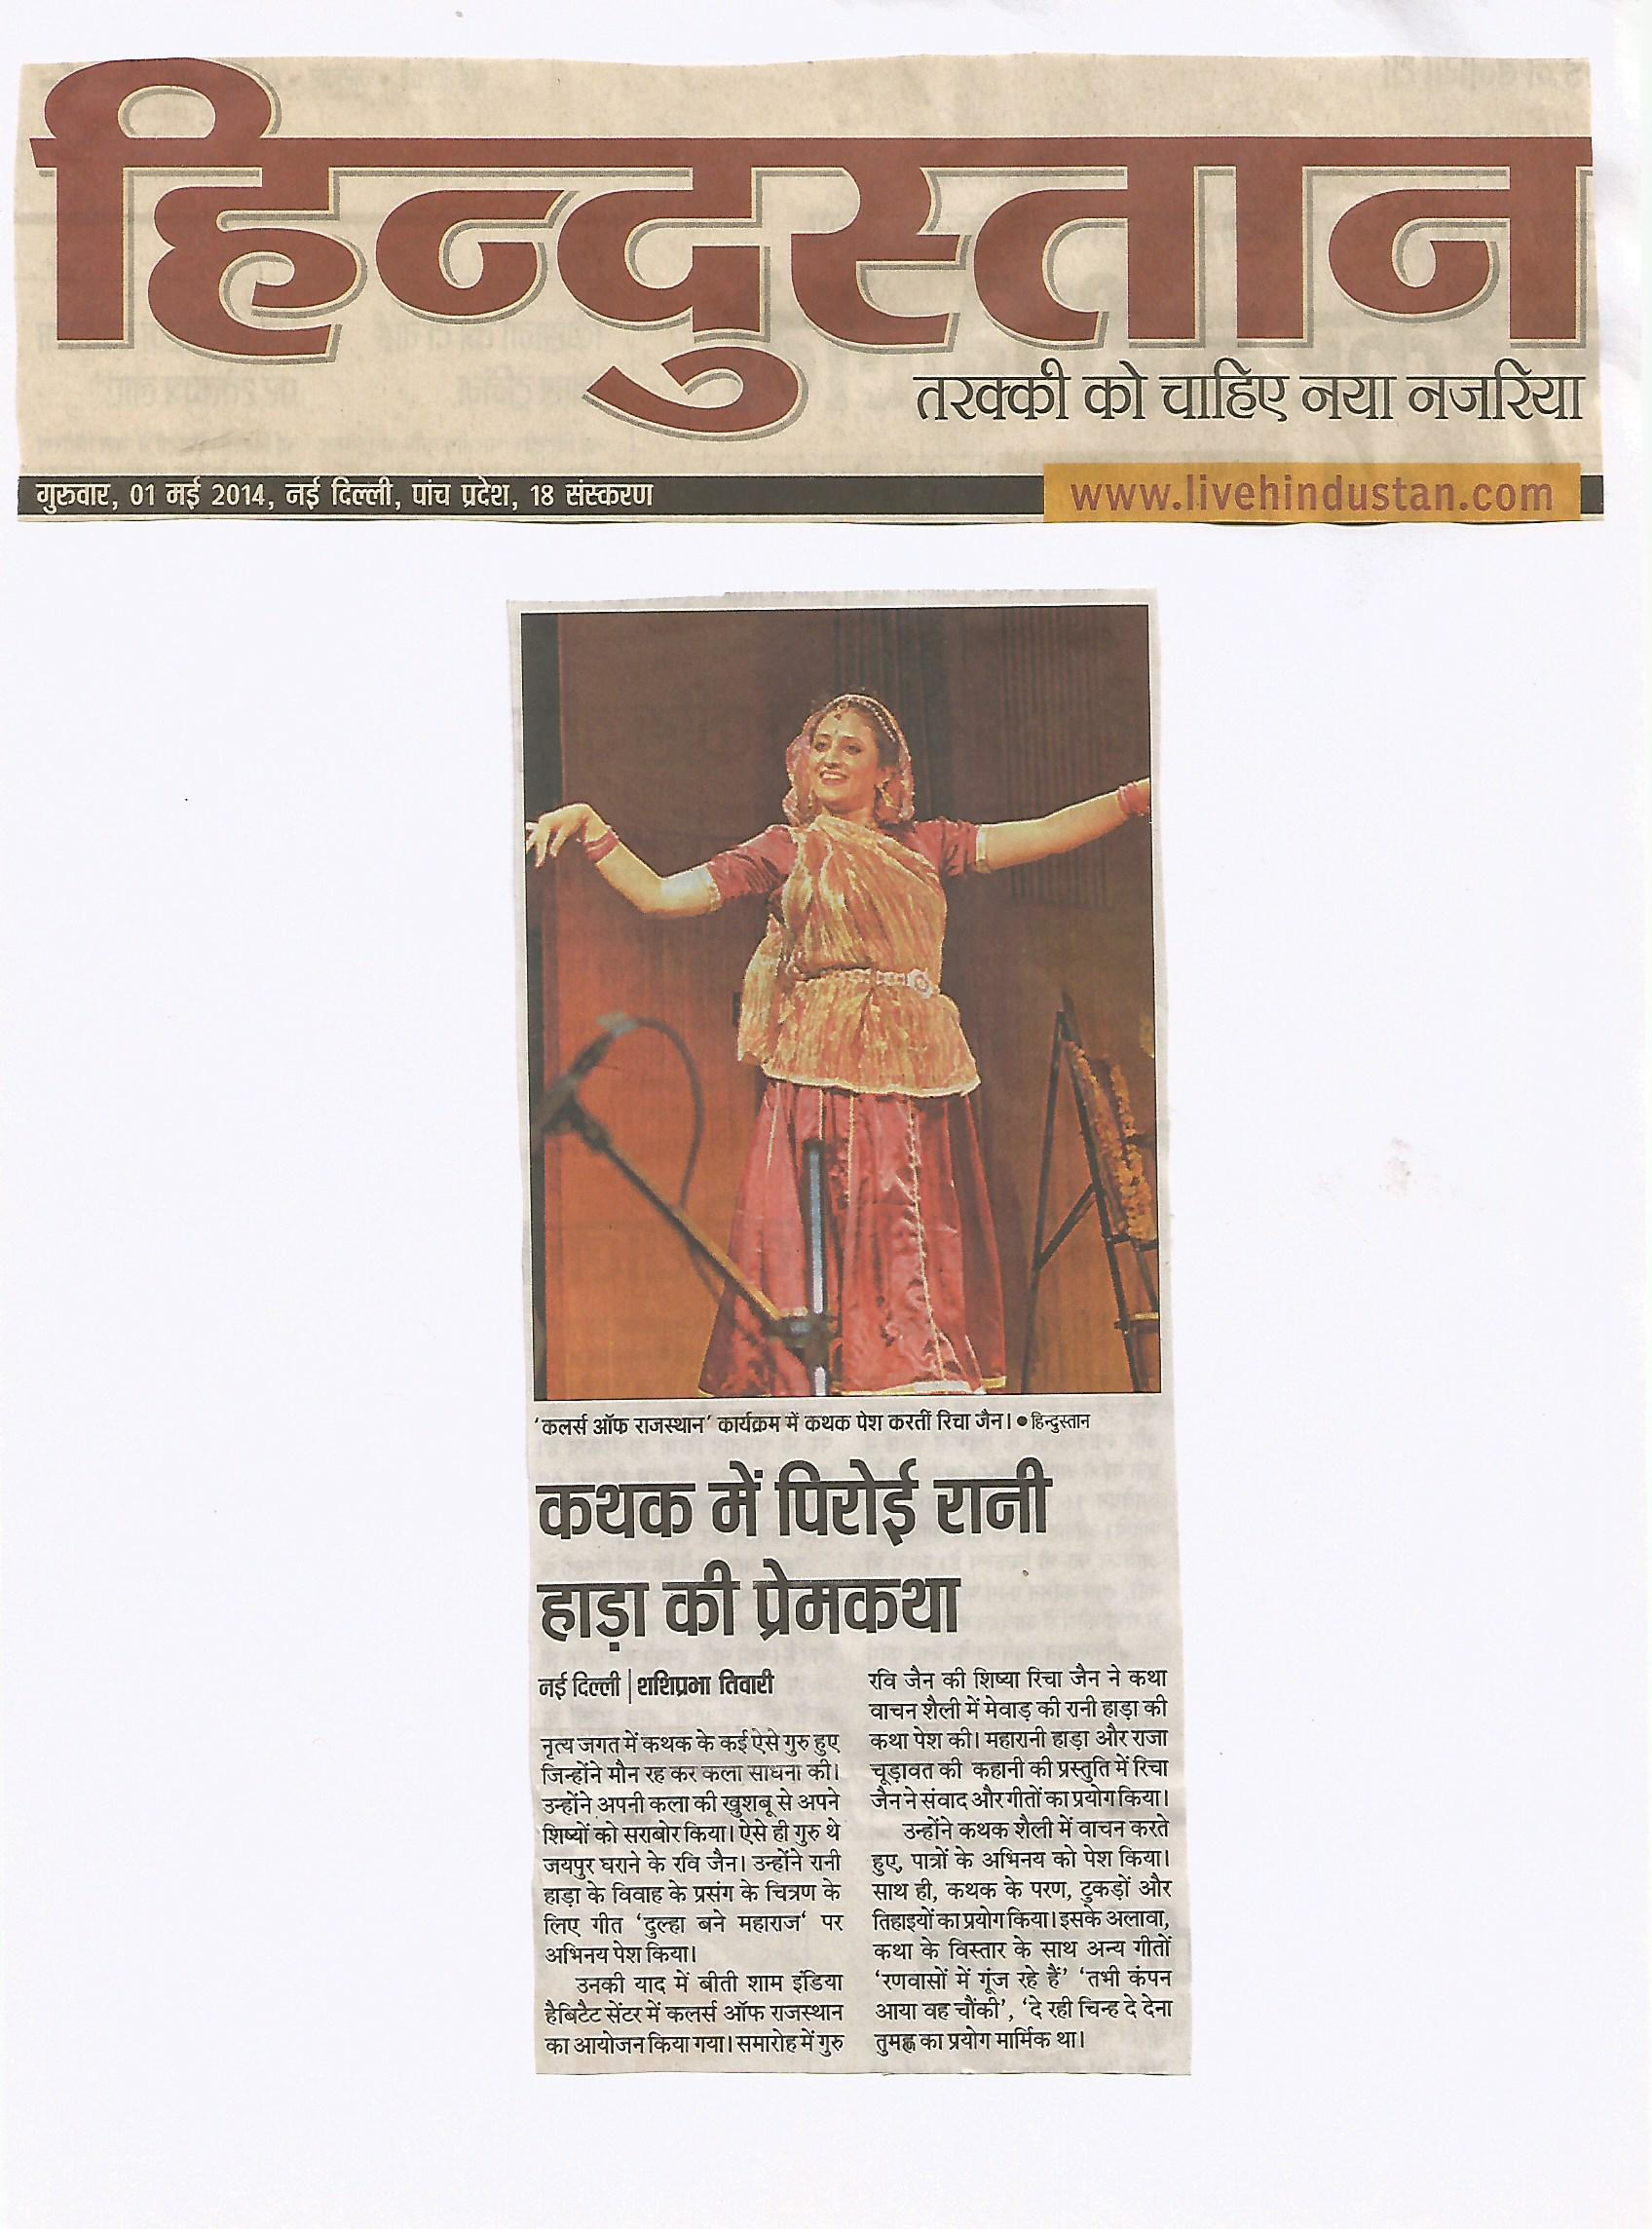 Press Review, Hindustan, 1st may, 2014, Colours of rajasthan, By Shashi prabha Tiwari